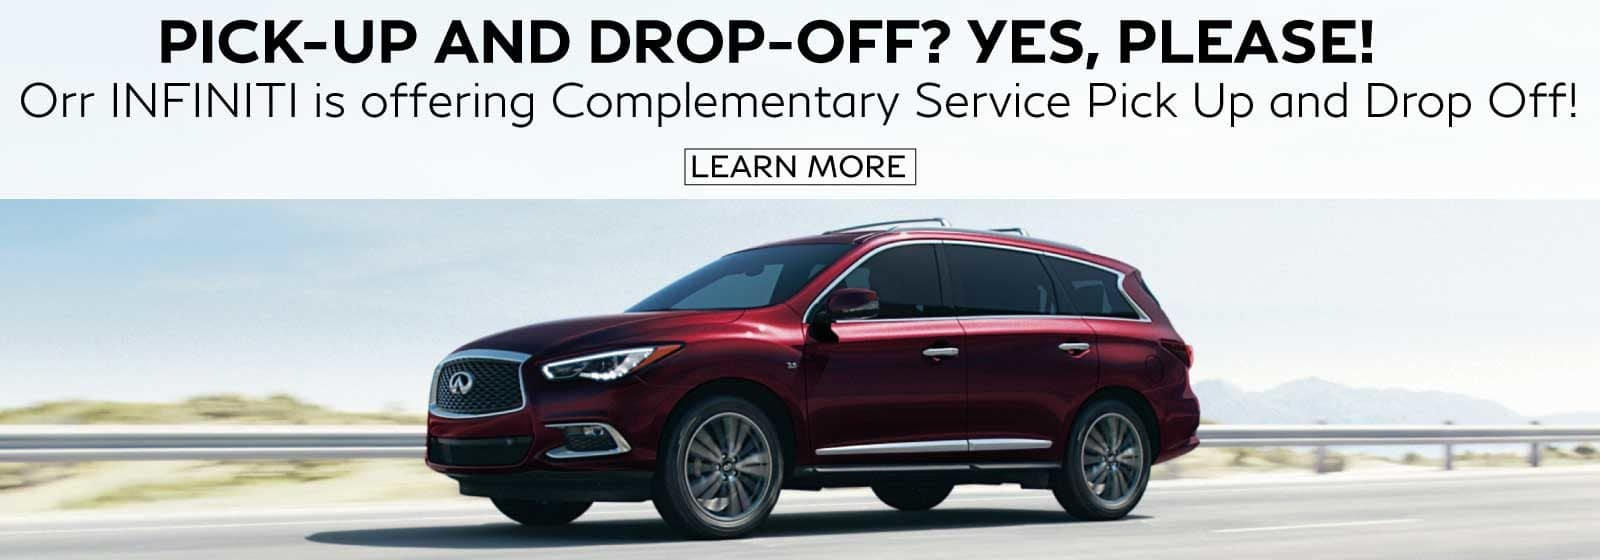 Pick-up and drop-off? yes please! complementary pick up and drop off at Orr INFINITI